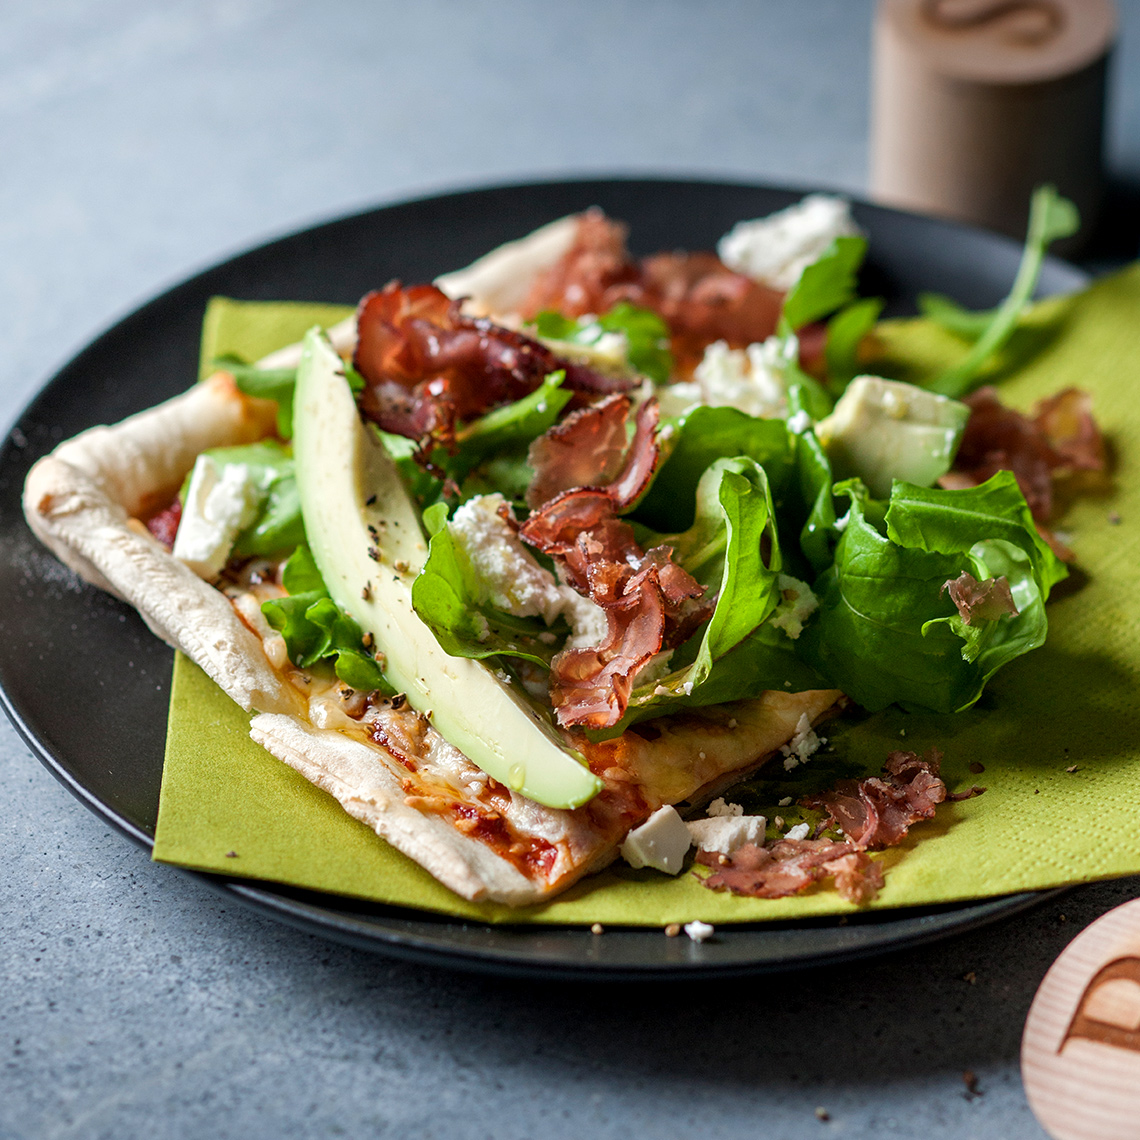 Party pizza with biltong, avocado and feta